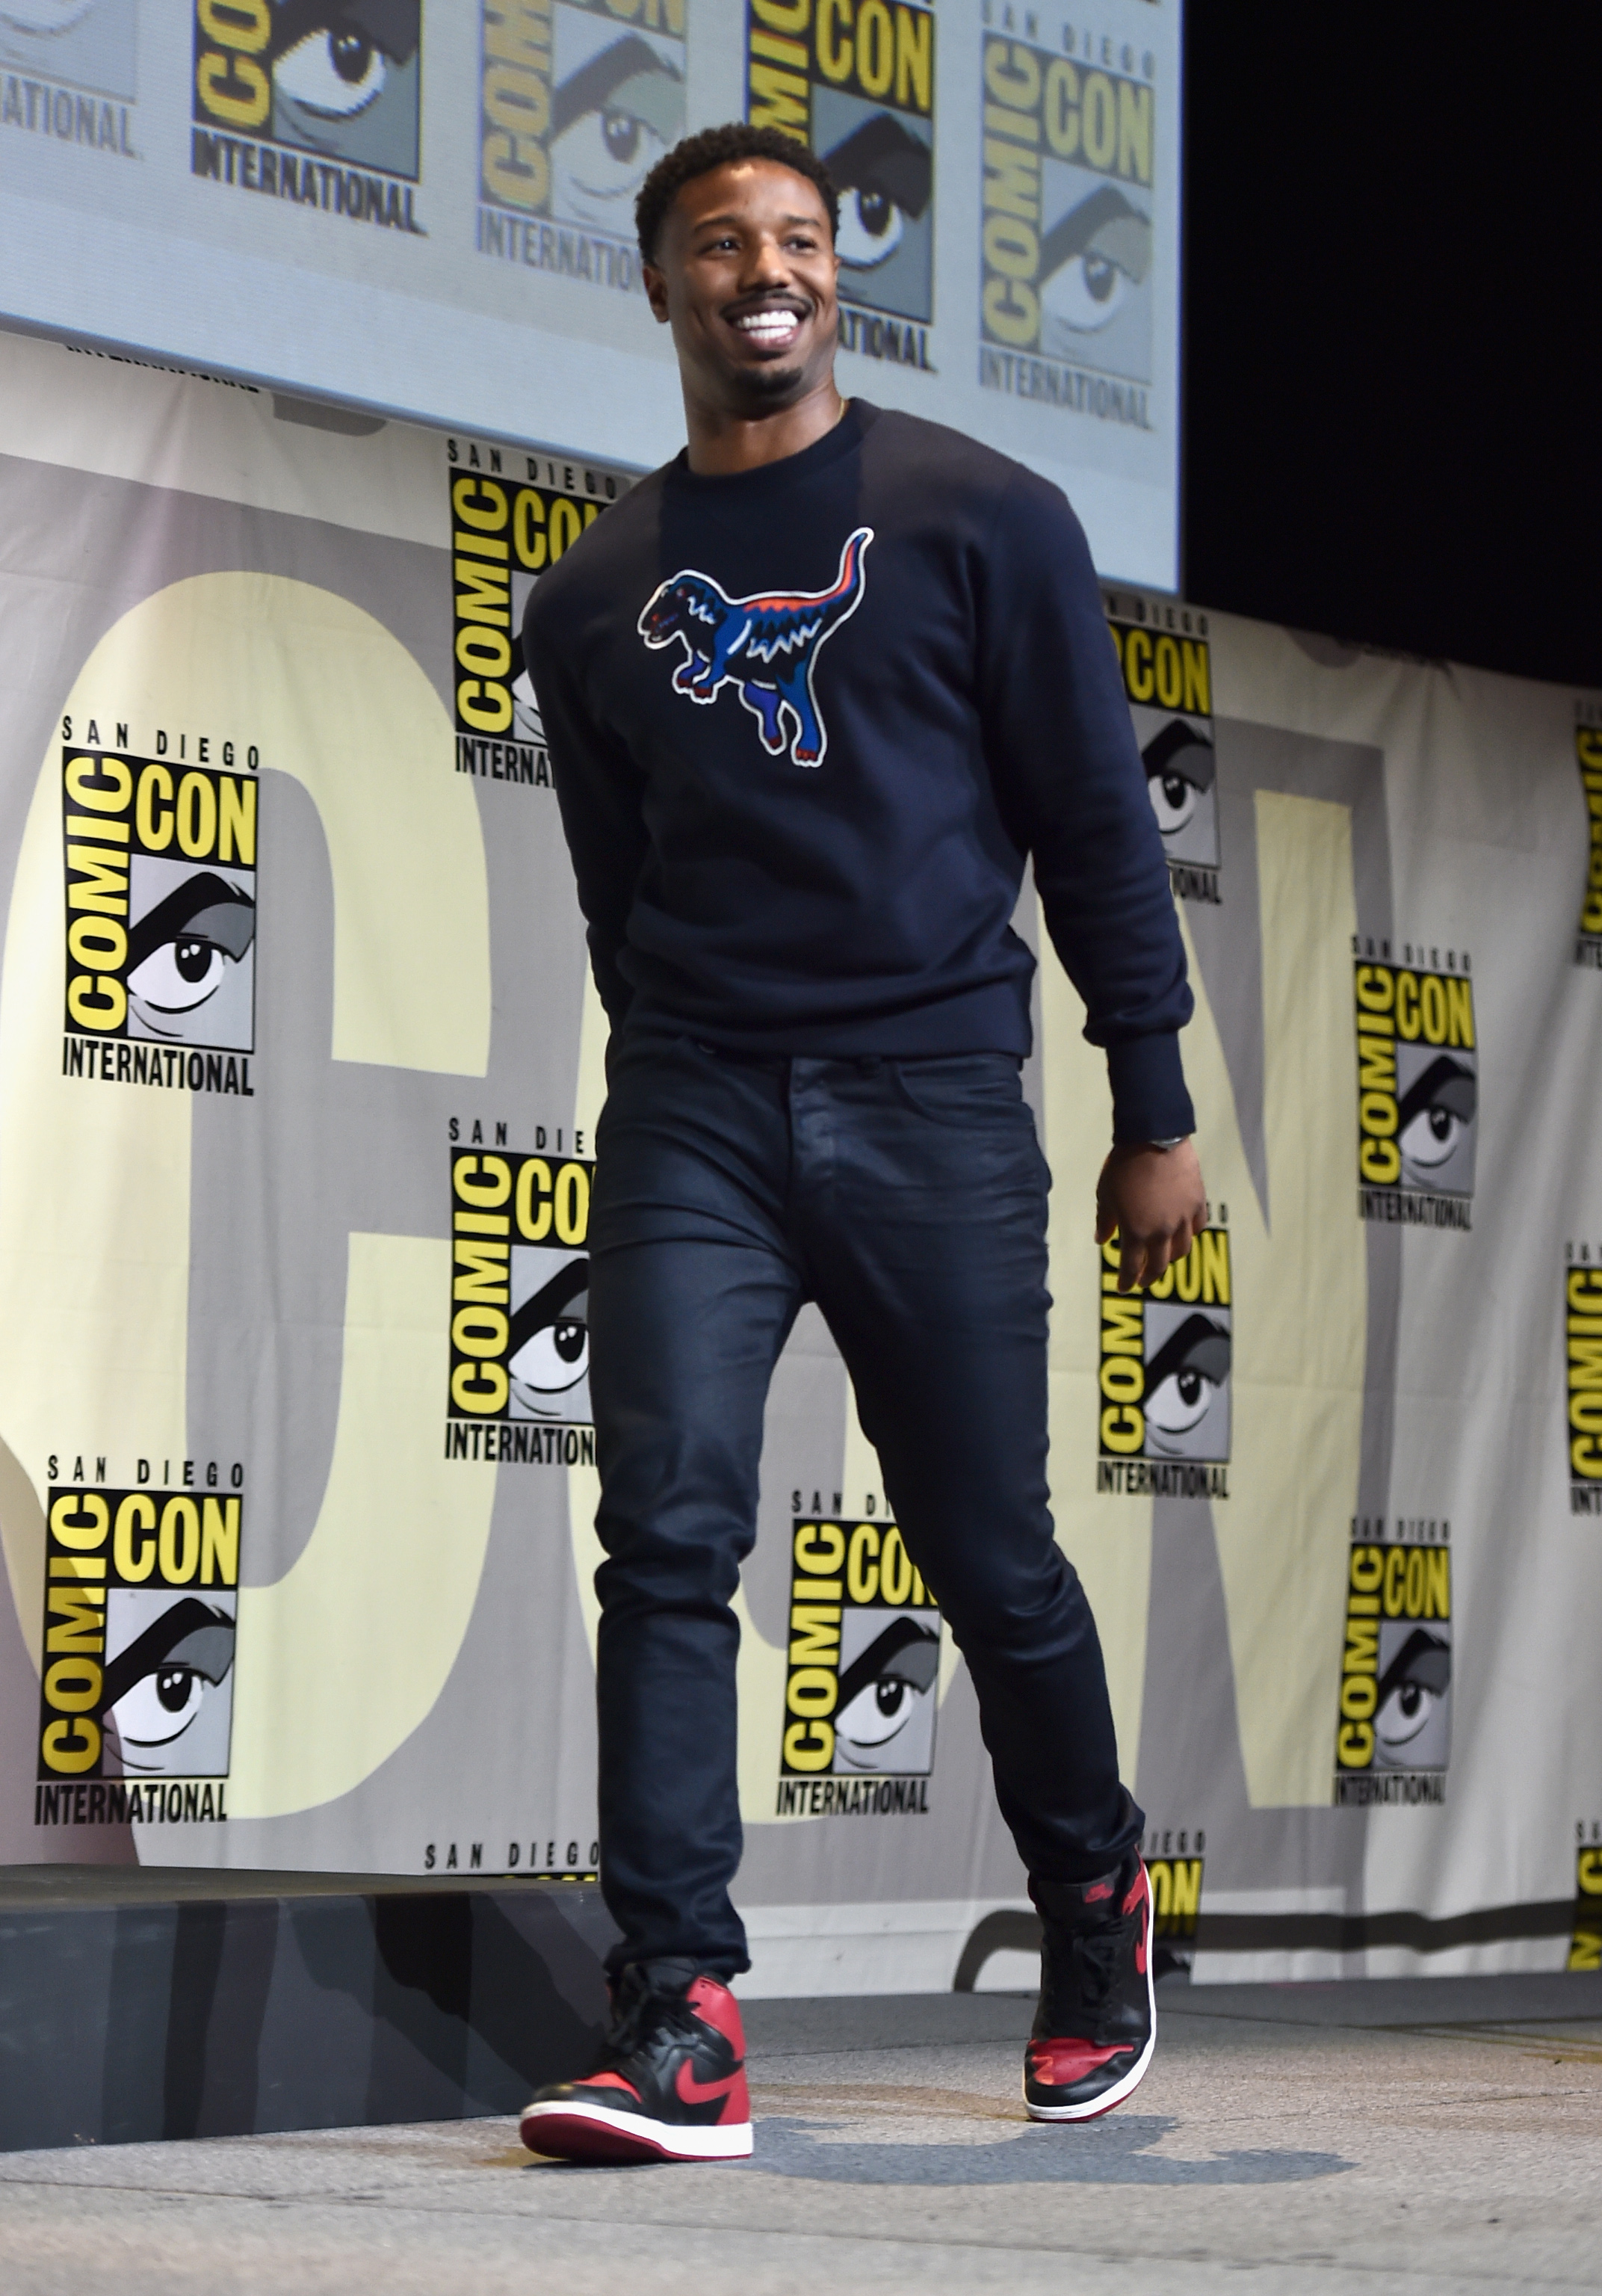 "SAN DIEGO, CA - JULY 23: Actor Michael B. Jordan from Marvel Studios' ""Black Panther"" attends the San Diego Comic-Con International 2016 Marvel Panel in Hall H on July 23, 2016 in San Diego, California. ©Marvel Studios 2016 (Photo by Alberto E. Rodriguez/Getty Images for Disney)"